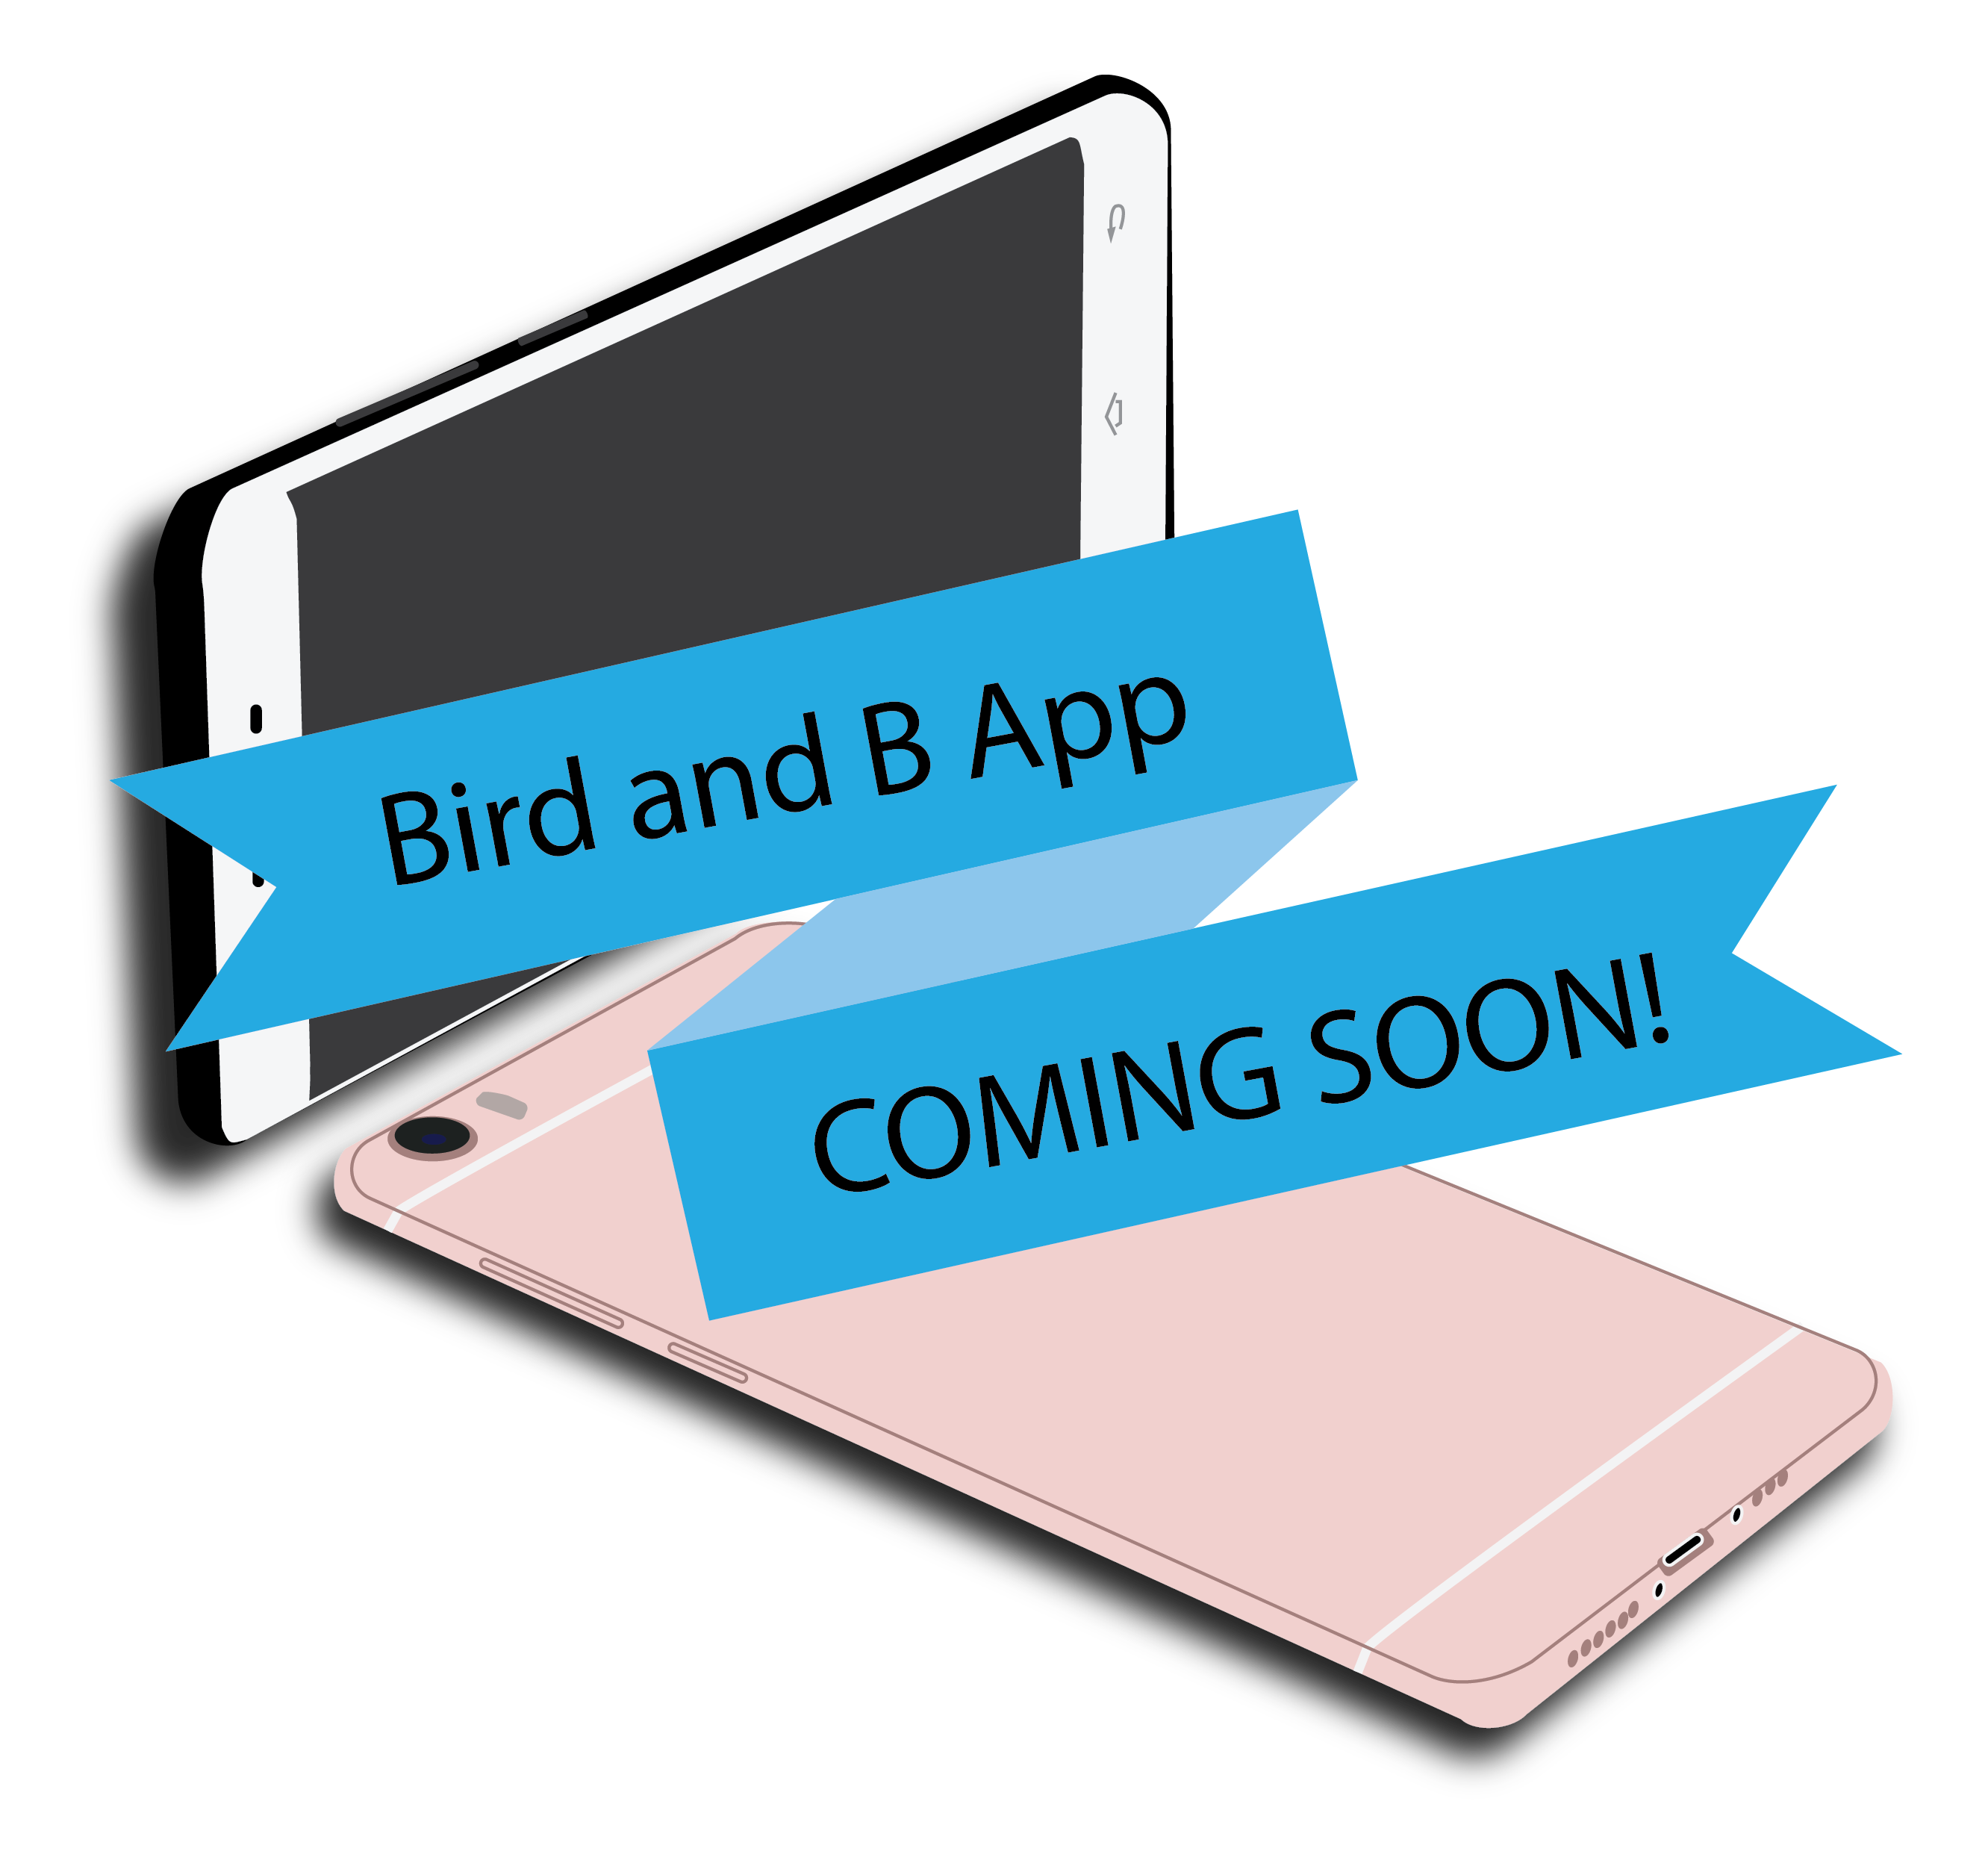 coming soon phone app